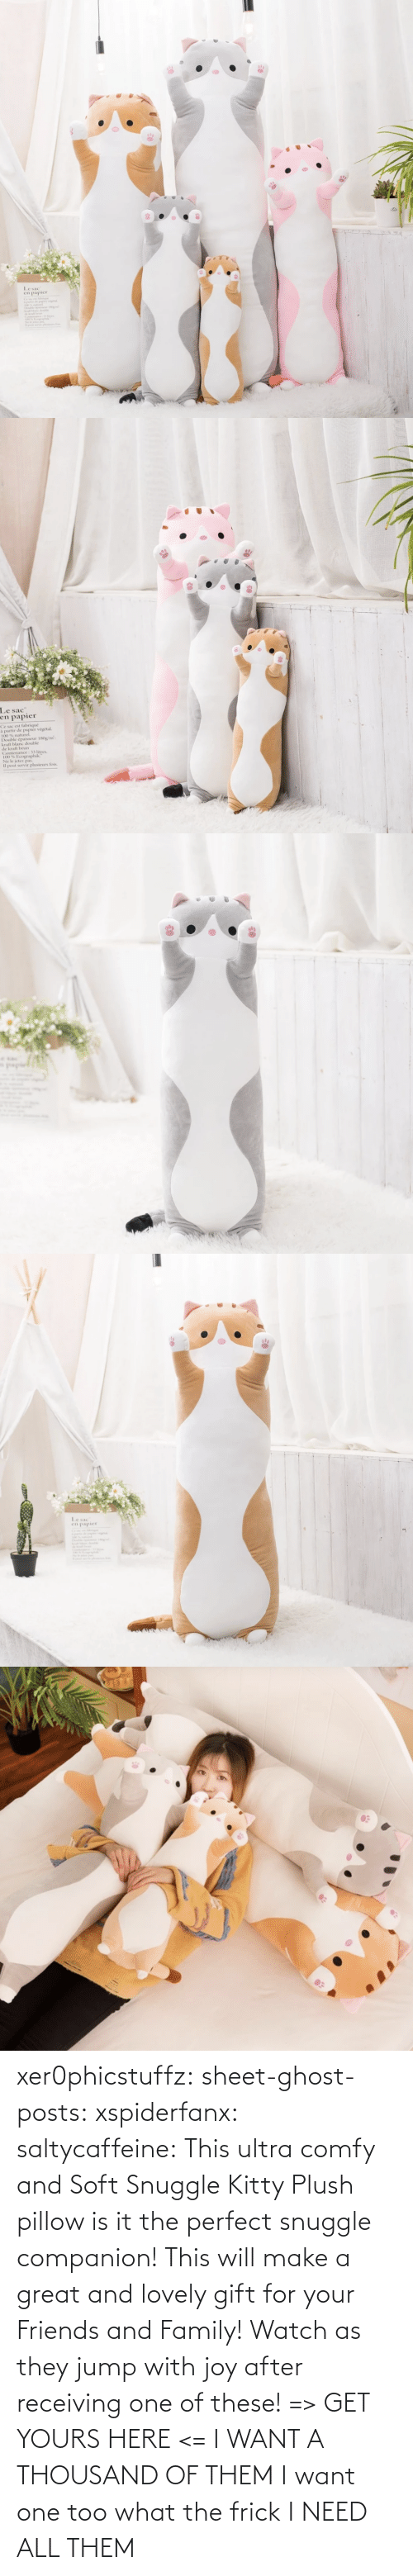 One Of These: xer0phicstuffz:  sheet-ghost-posts: xspiderfanx:  saltycaffeine:  This ultra comfy and Soft Snuggle Kitty Plush pillow is it the perfect snuggle companion! This will make a great and lovely gift for your Friends and Family! Watch as they jump with joy after receiving one of these! => GET YOURS HERE <=    I WANT A THOUSAND OF THEM  I want one too what the frick    I NEED ALL THEM